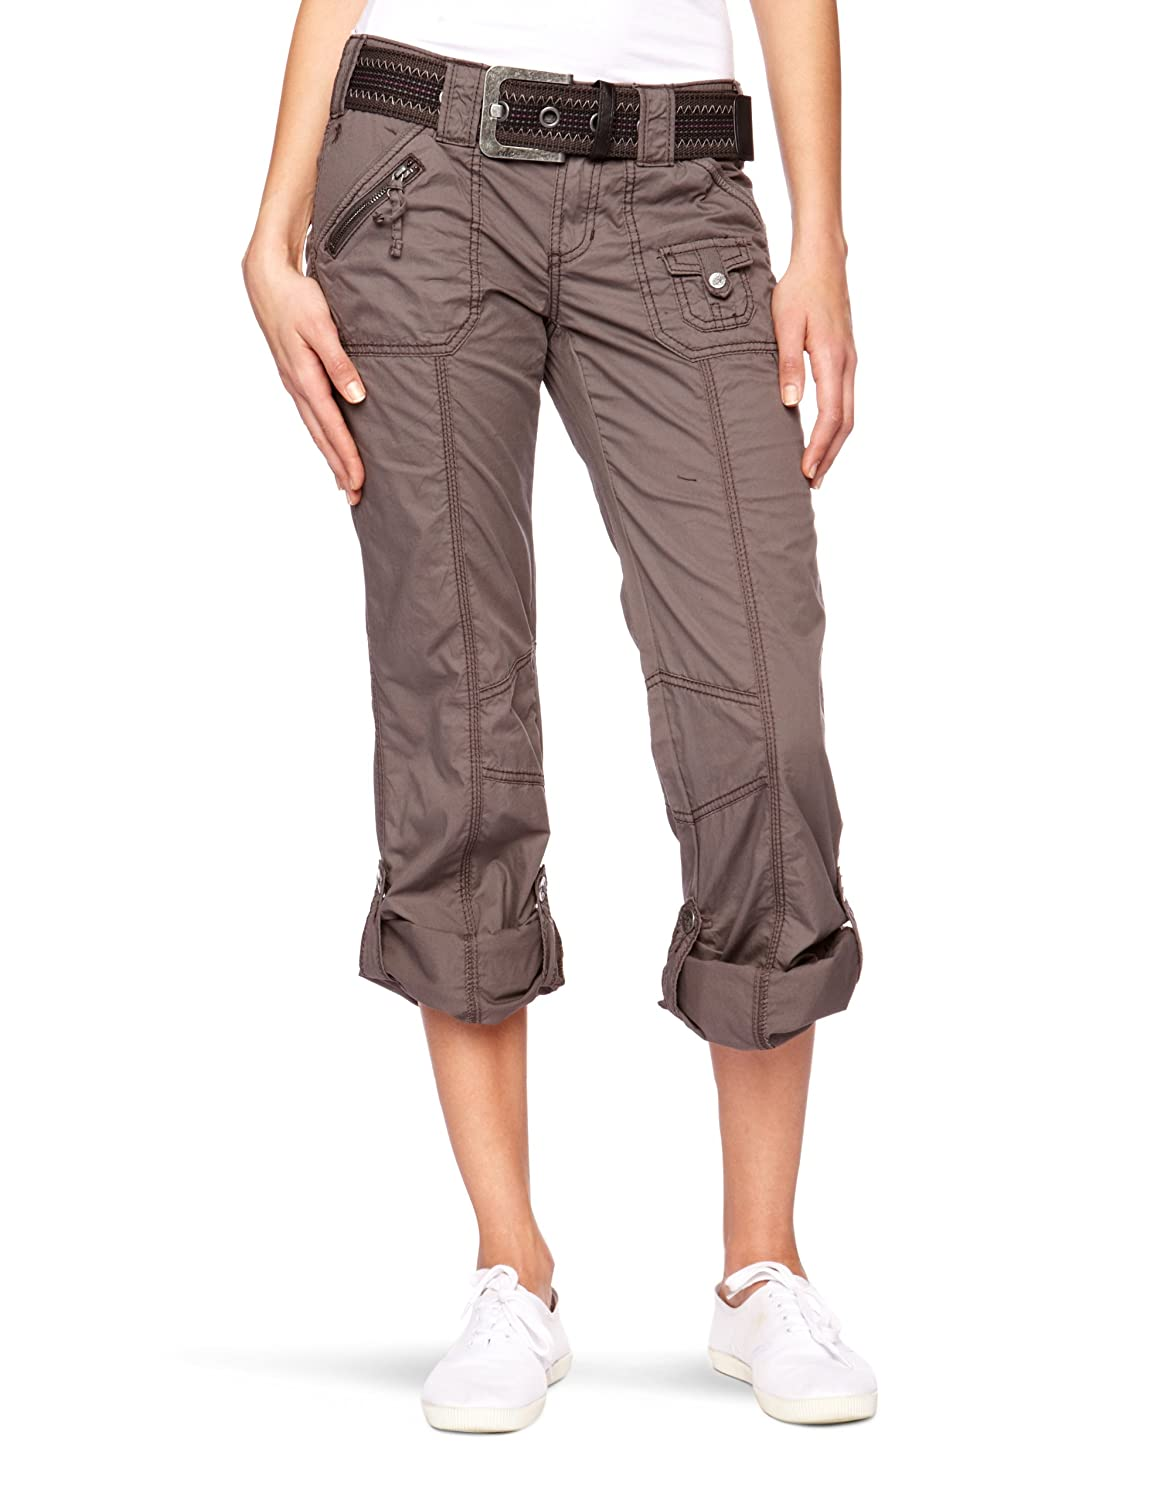 92acd26cb033 edc by ESPRIT 993CC1B902 Relaxed Women's Trousers Grey (Fairy Grey)  W32INXL30IN(Size 6): Amazon.co.uk: Clothing